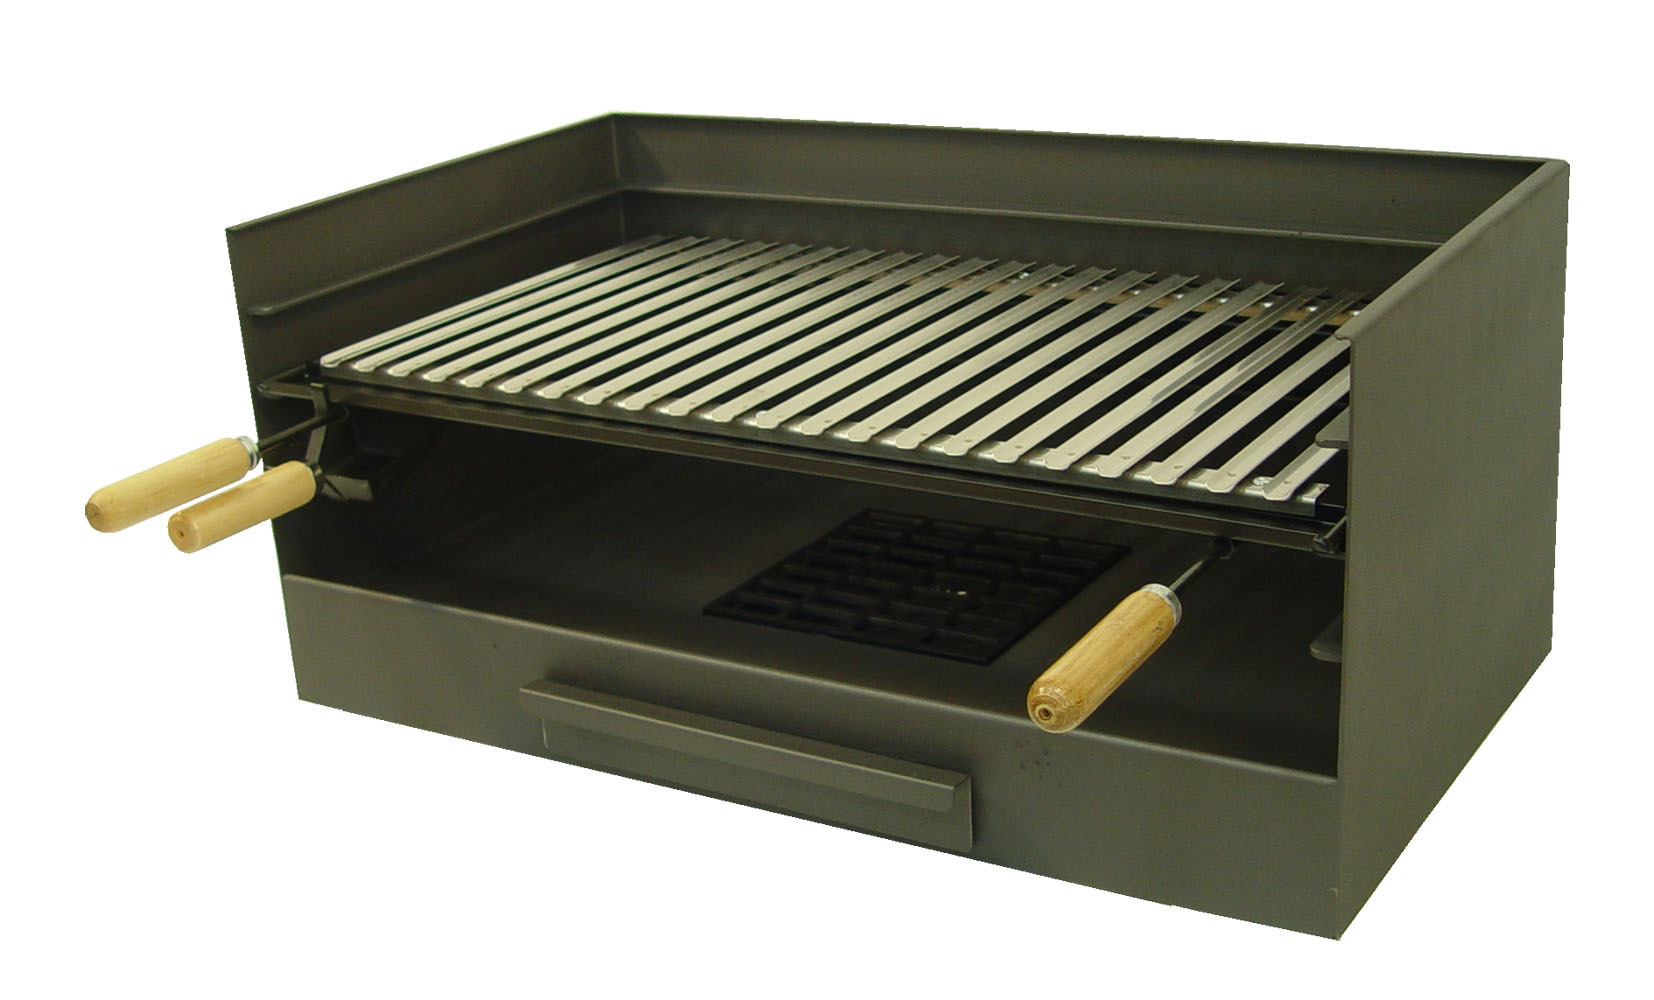 cajon barbacoa con parrilla inox grande the barbecue store